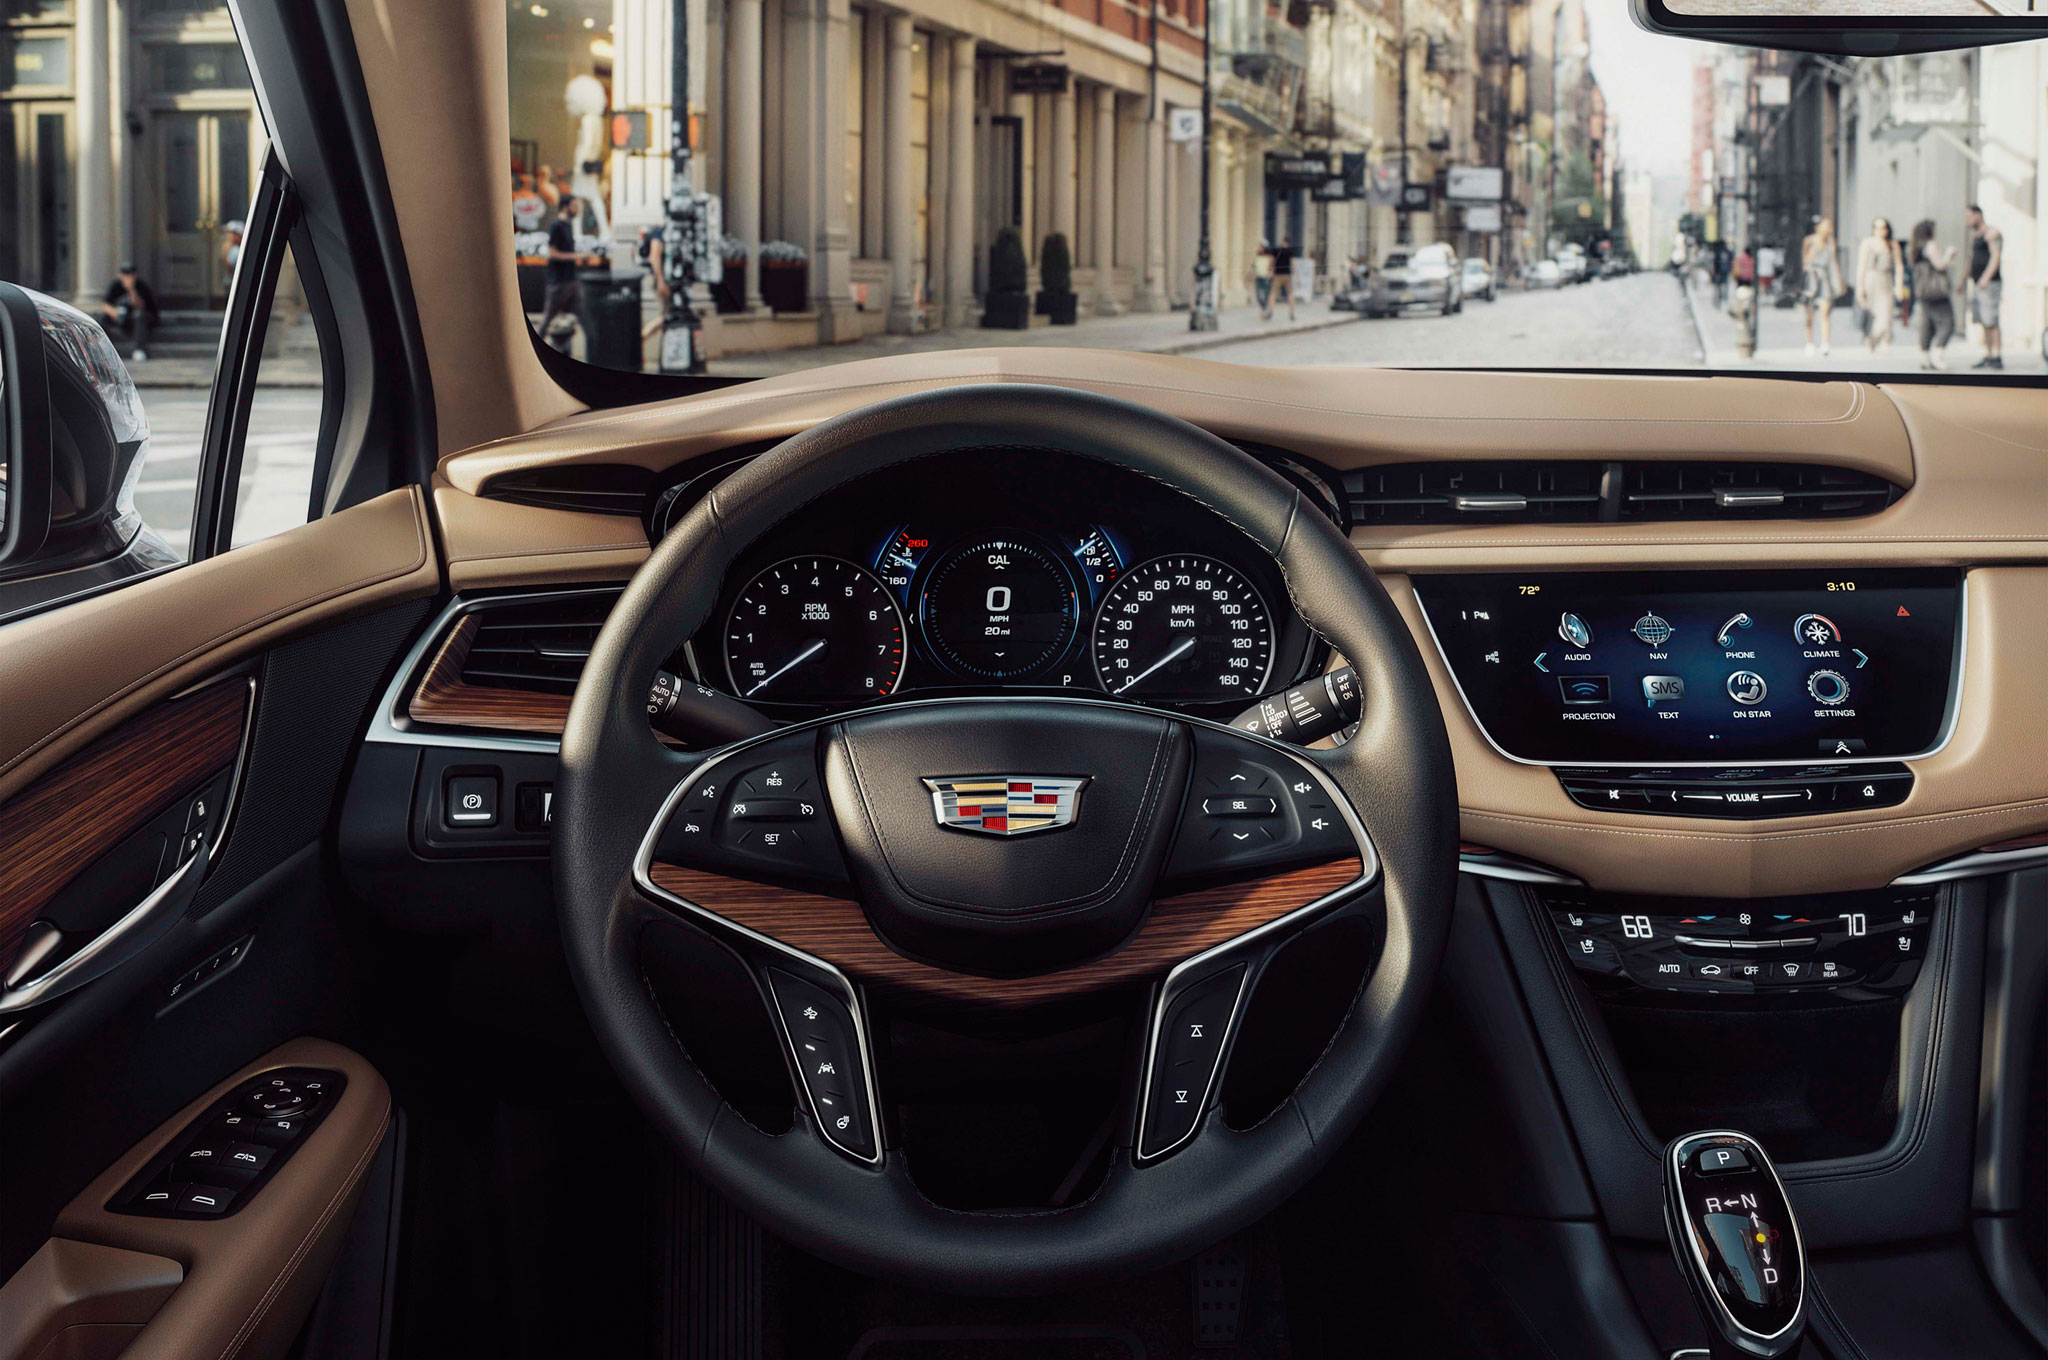 New Cadillac XT5 Interior Features - Best Small Luxury SUV 2020